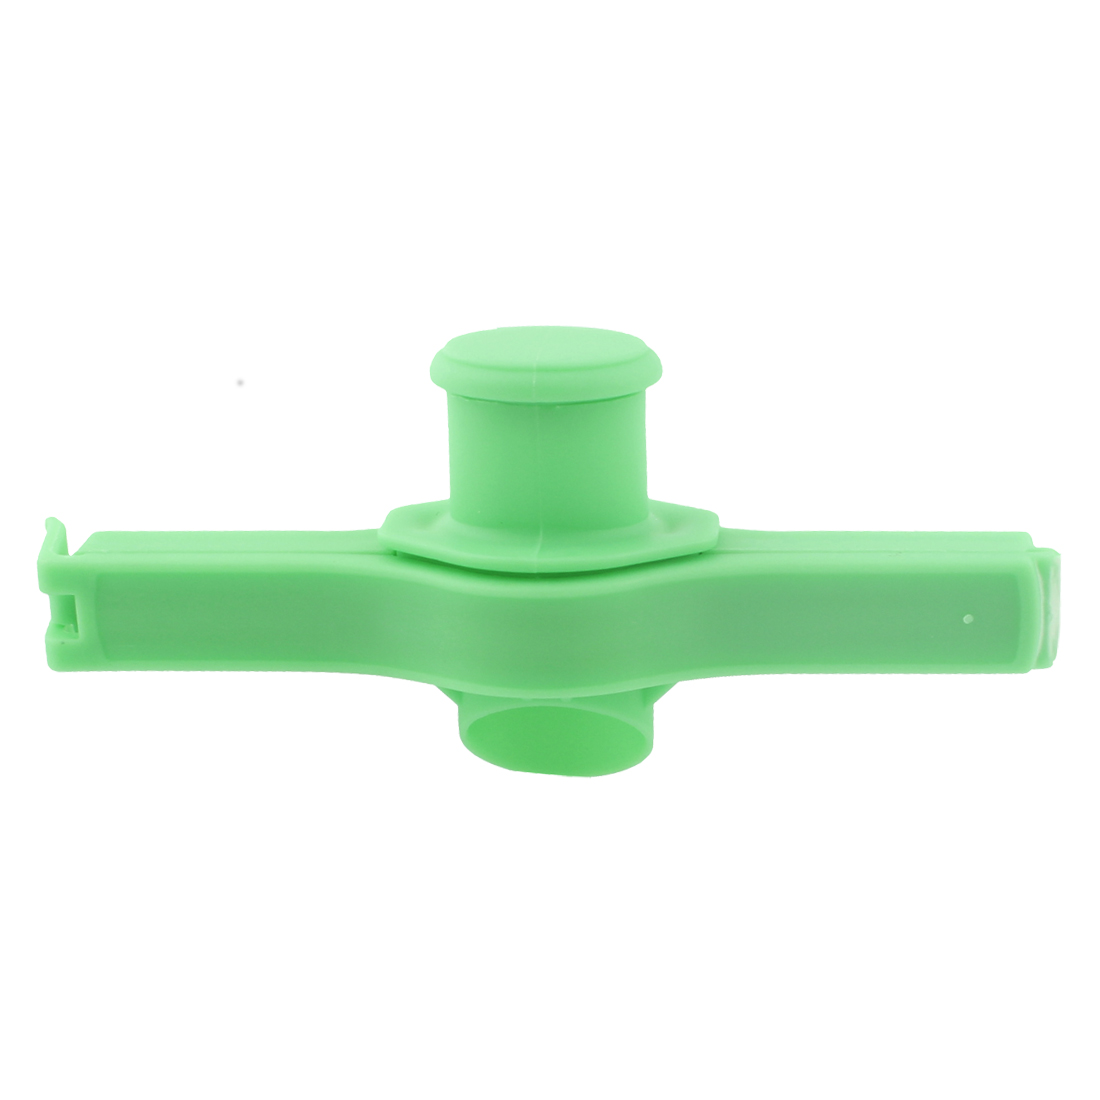 "Household Food Snacks Chips Storage Green Plastic Bag Seal Sealing Clips Clamp Sealer 4.4"" Long"